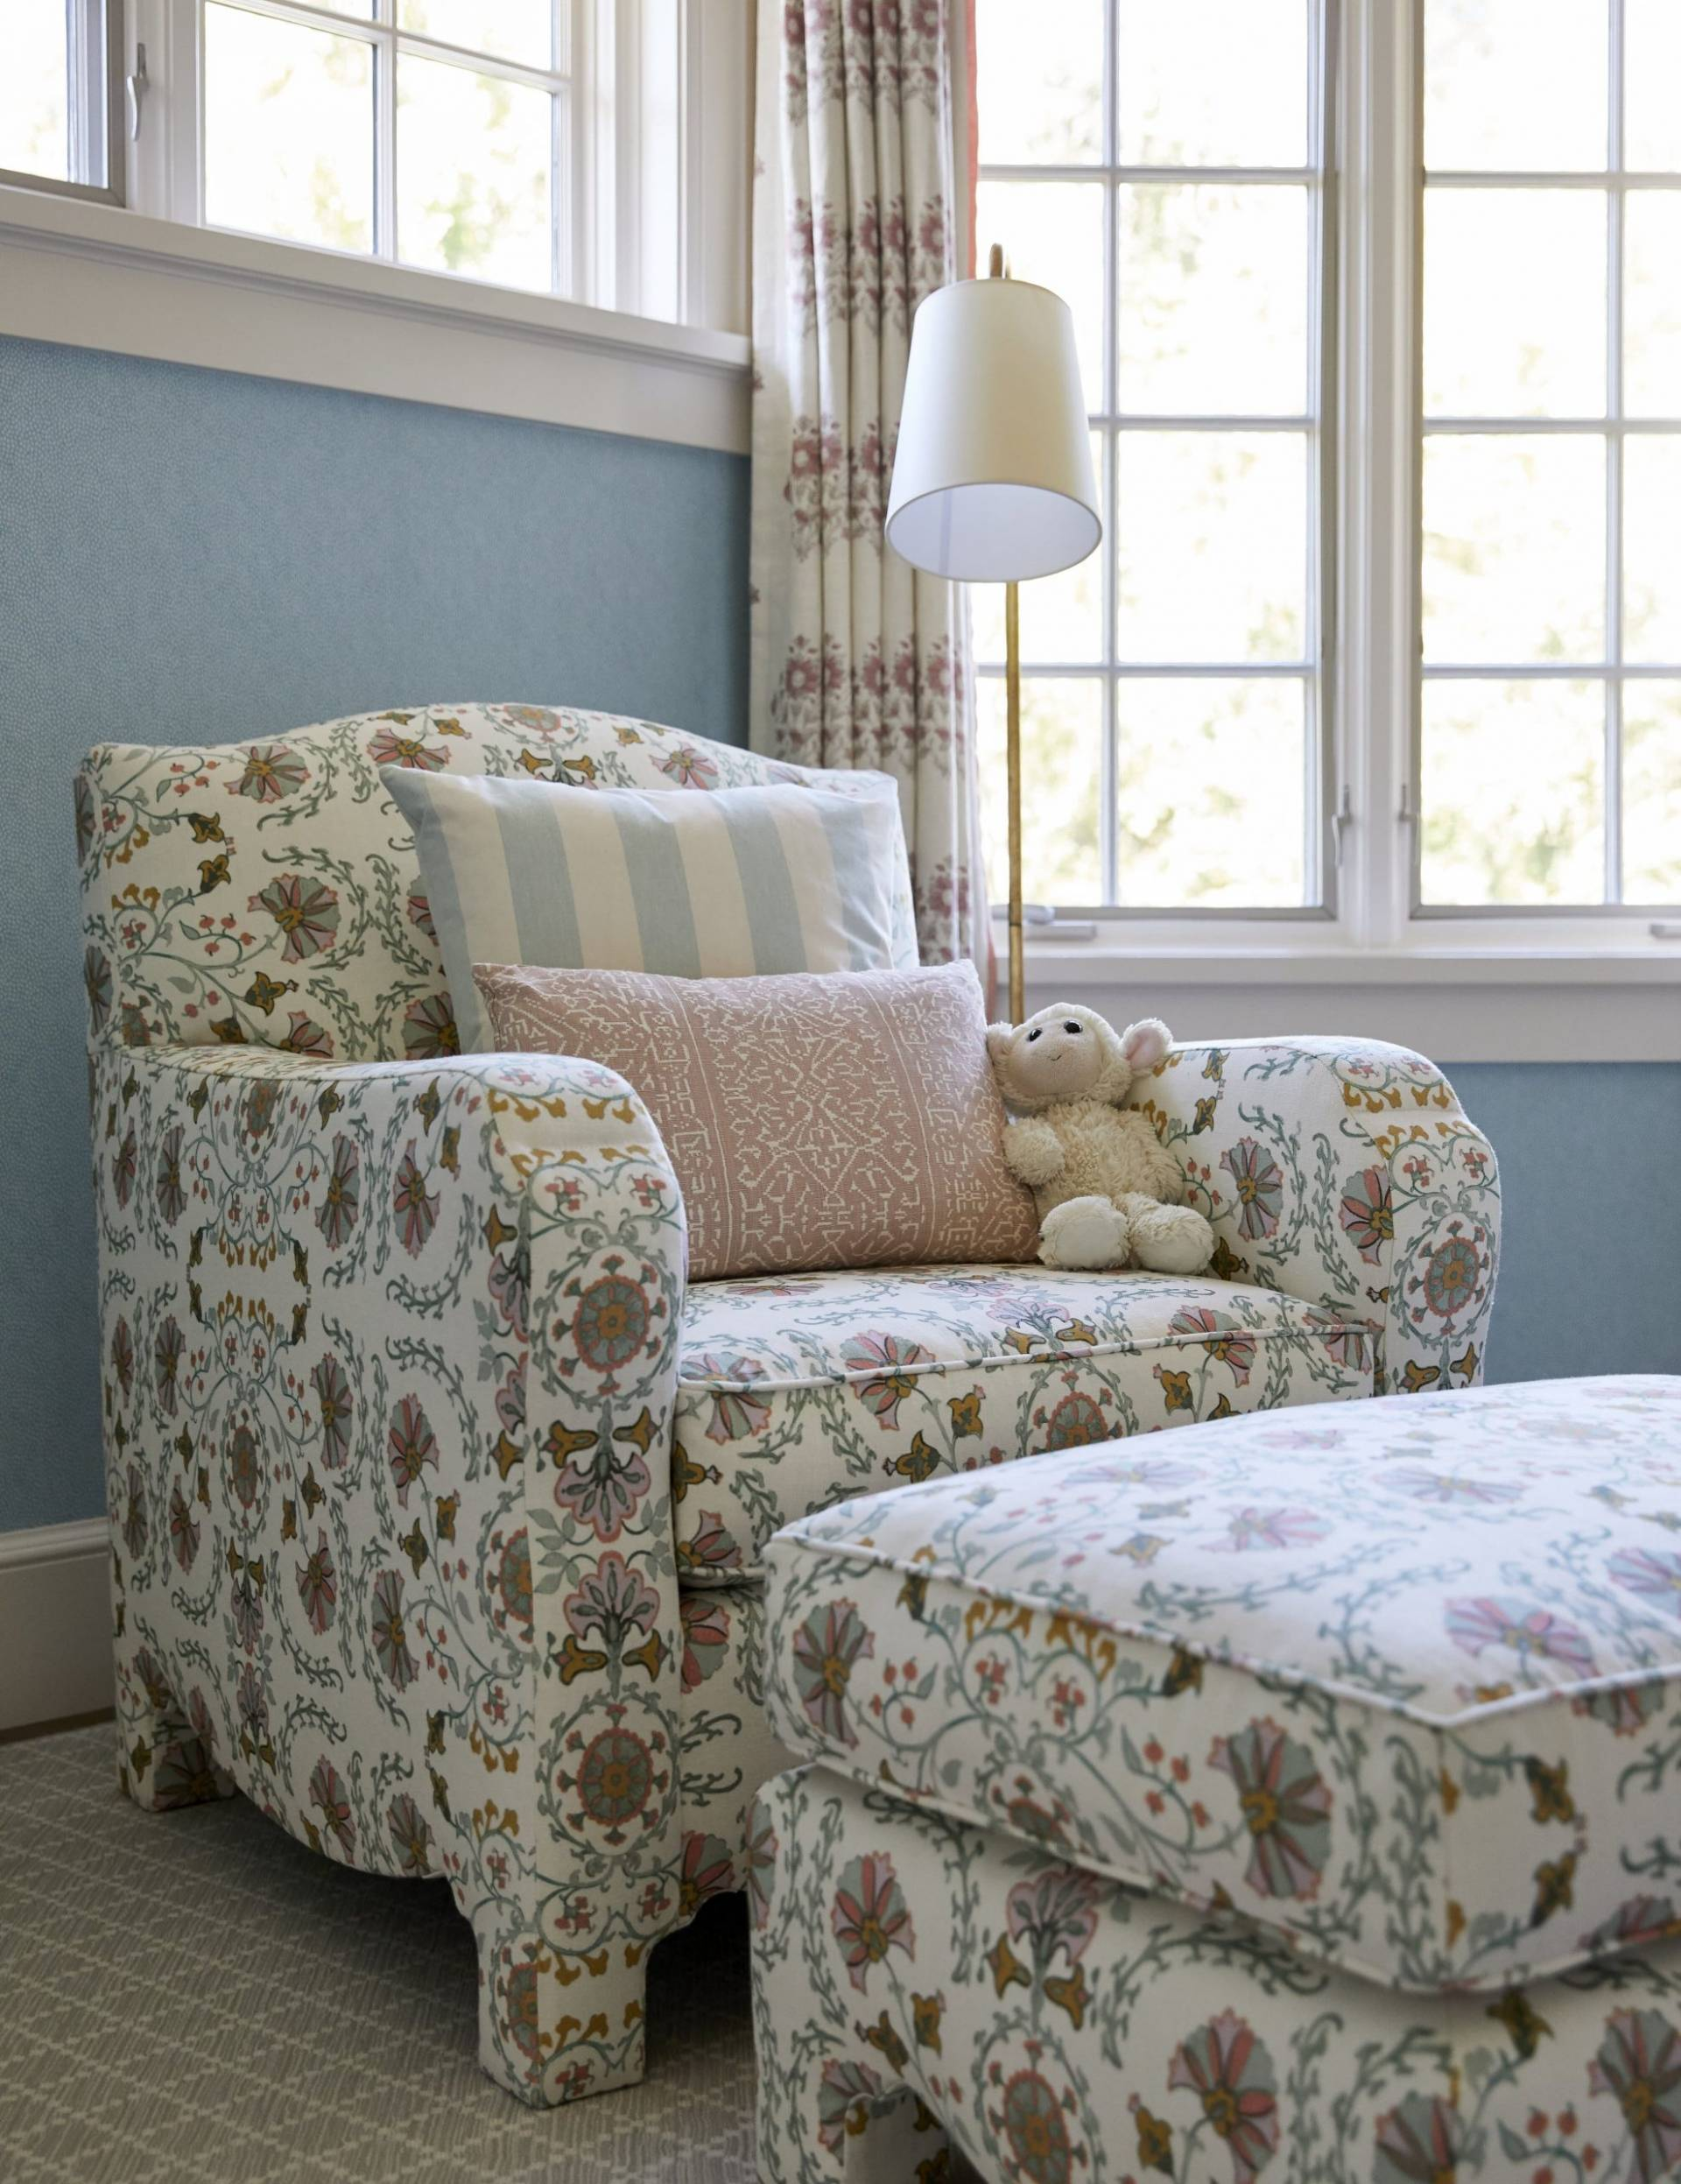 Floral patterned sitting char and drapery